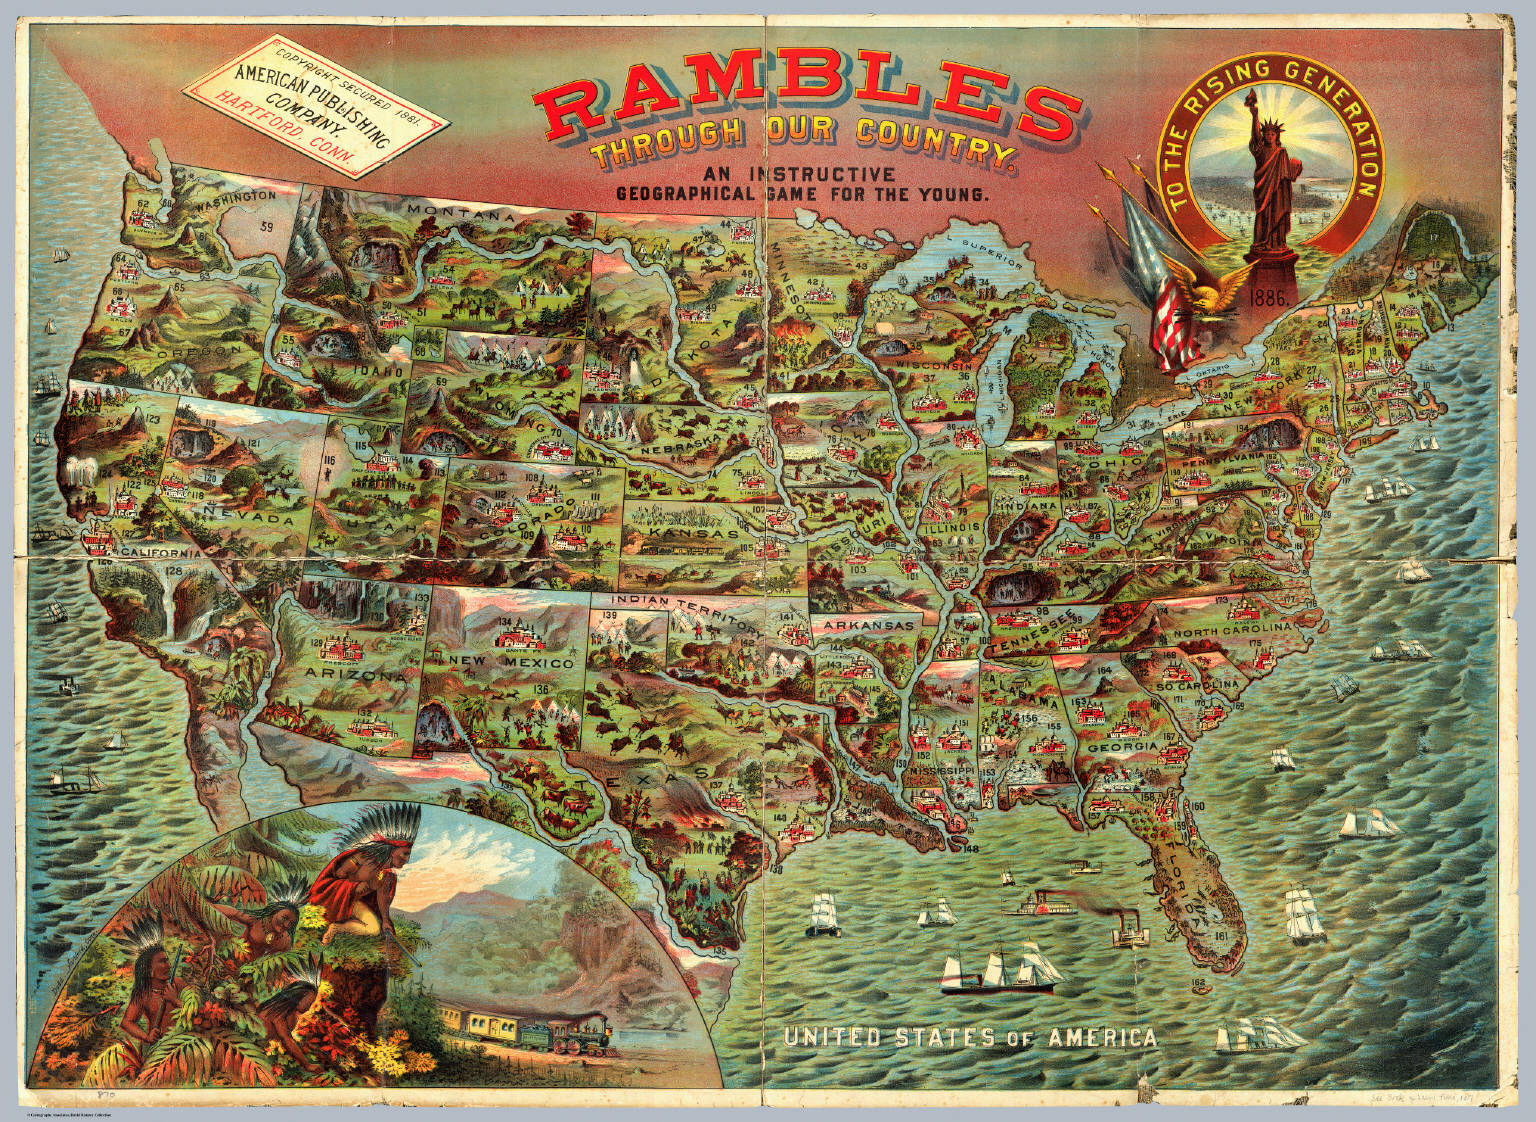 Rambles Through Our Country. - David Rumsey Historical Map Collection